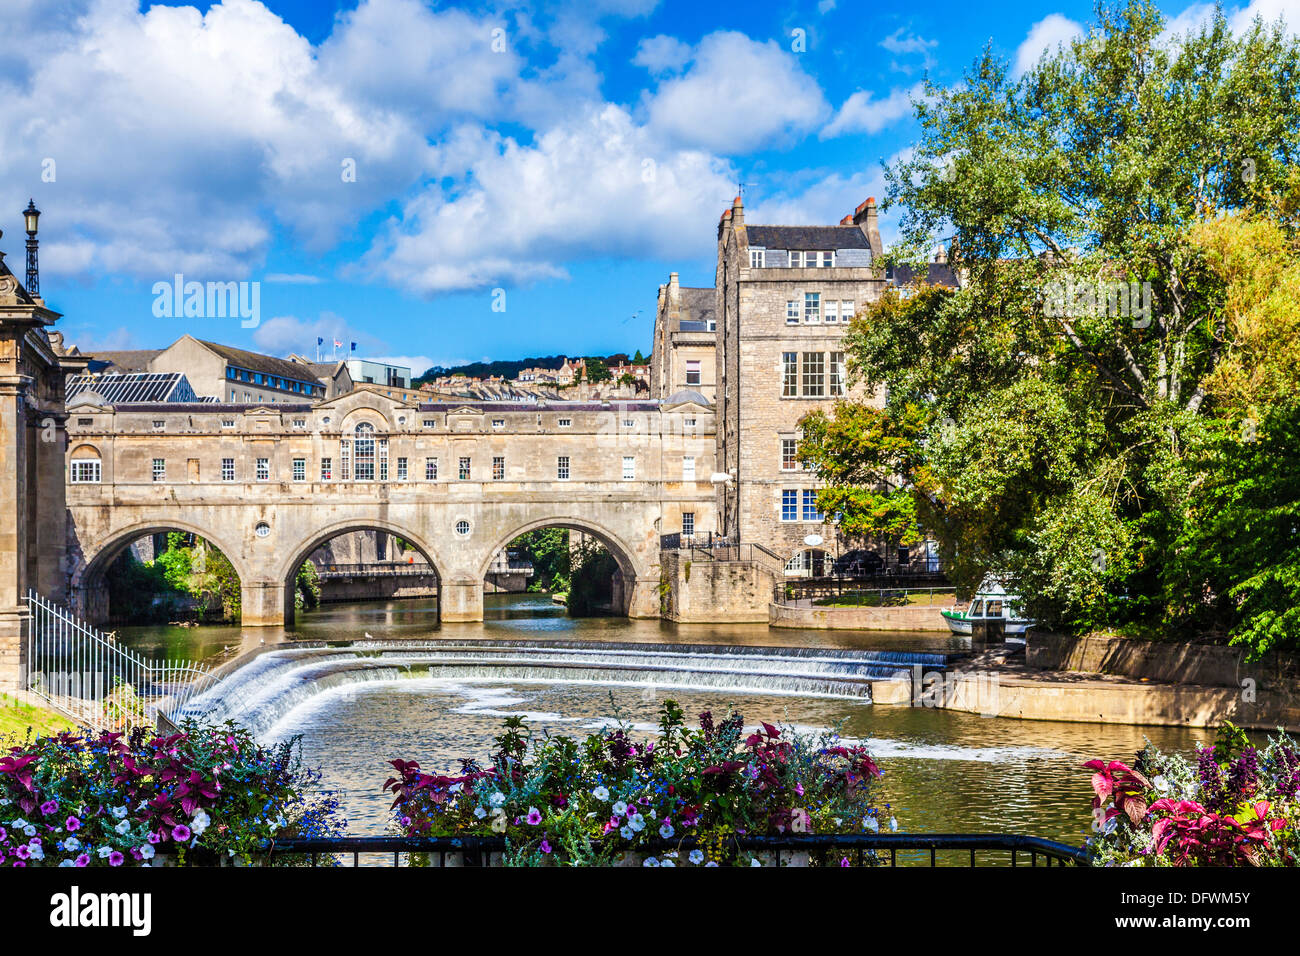 Classic view of the Palladian Pulteney Bridge and weir in the World Heritage city of Bath in Somerset, UK. - Stock Image